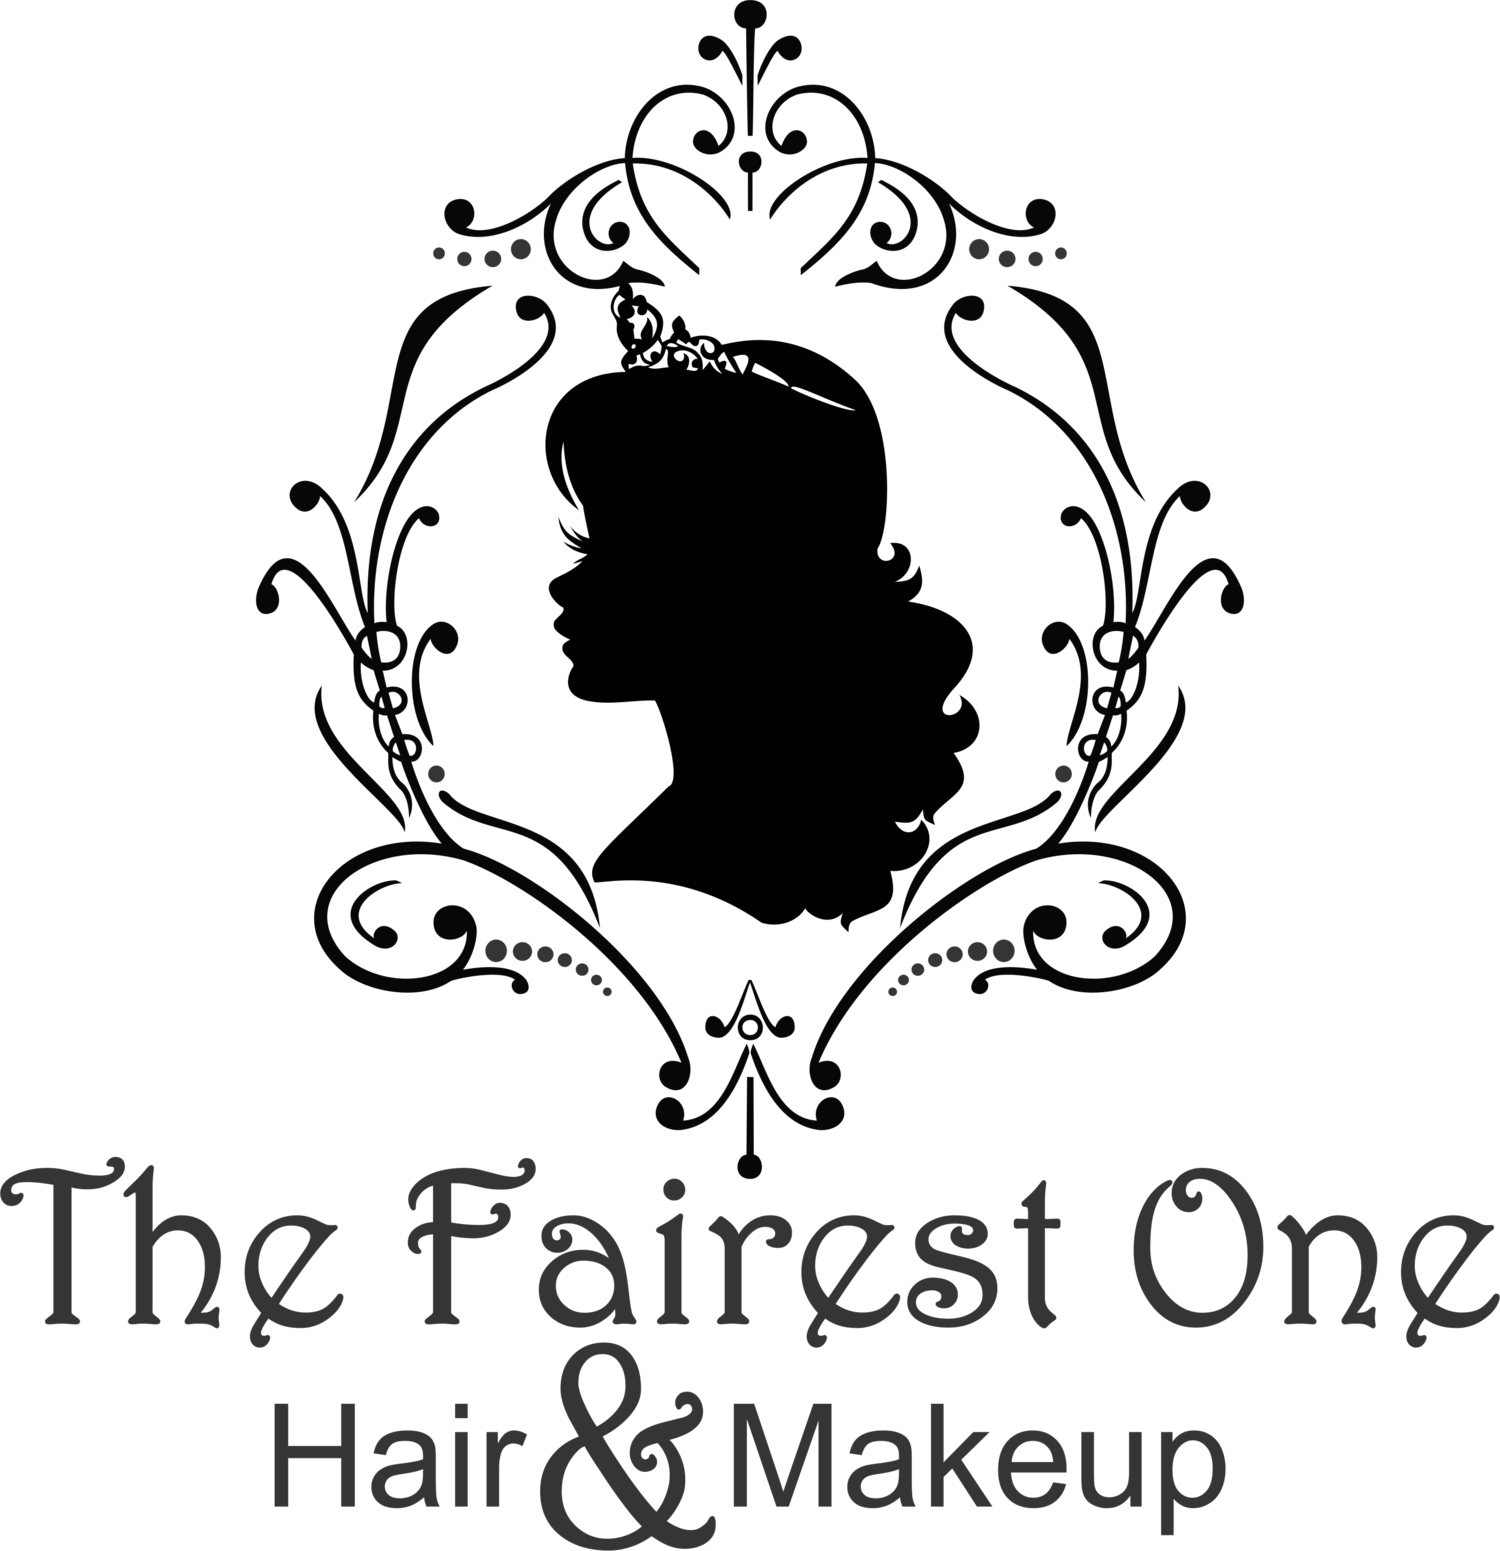 The Fairest One Hair & Makeup